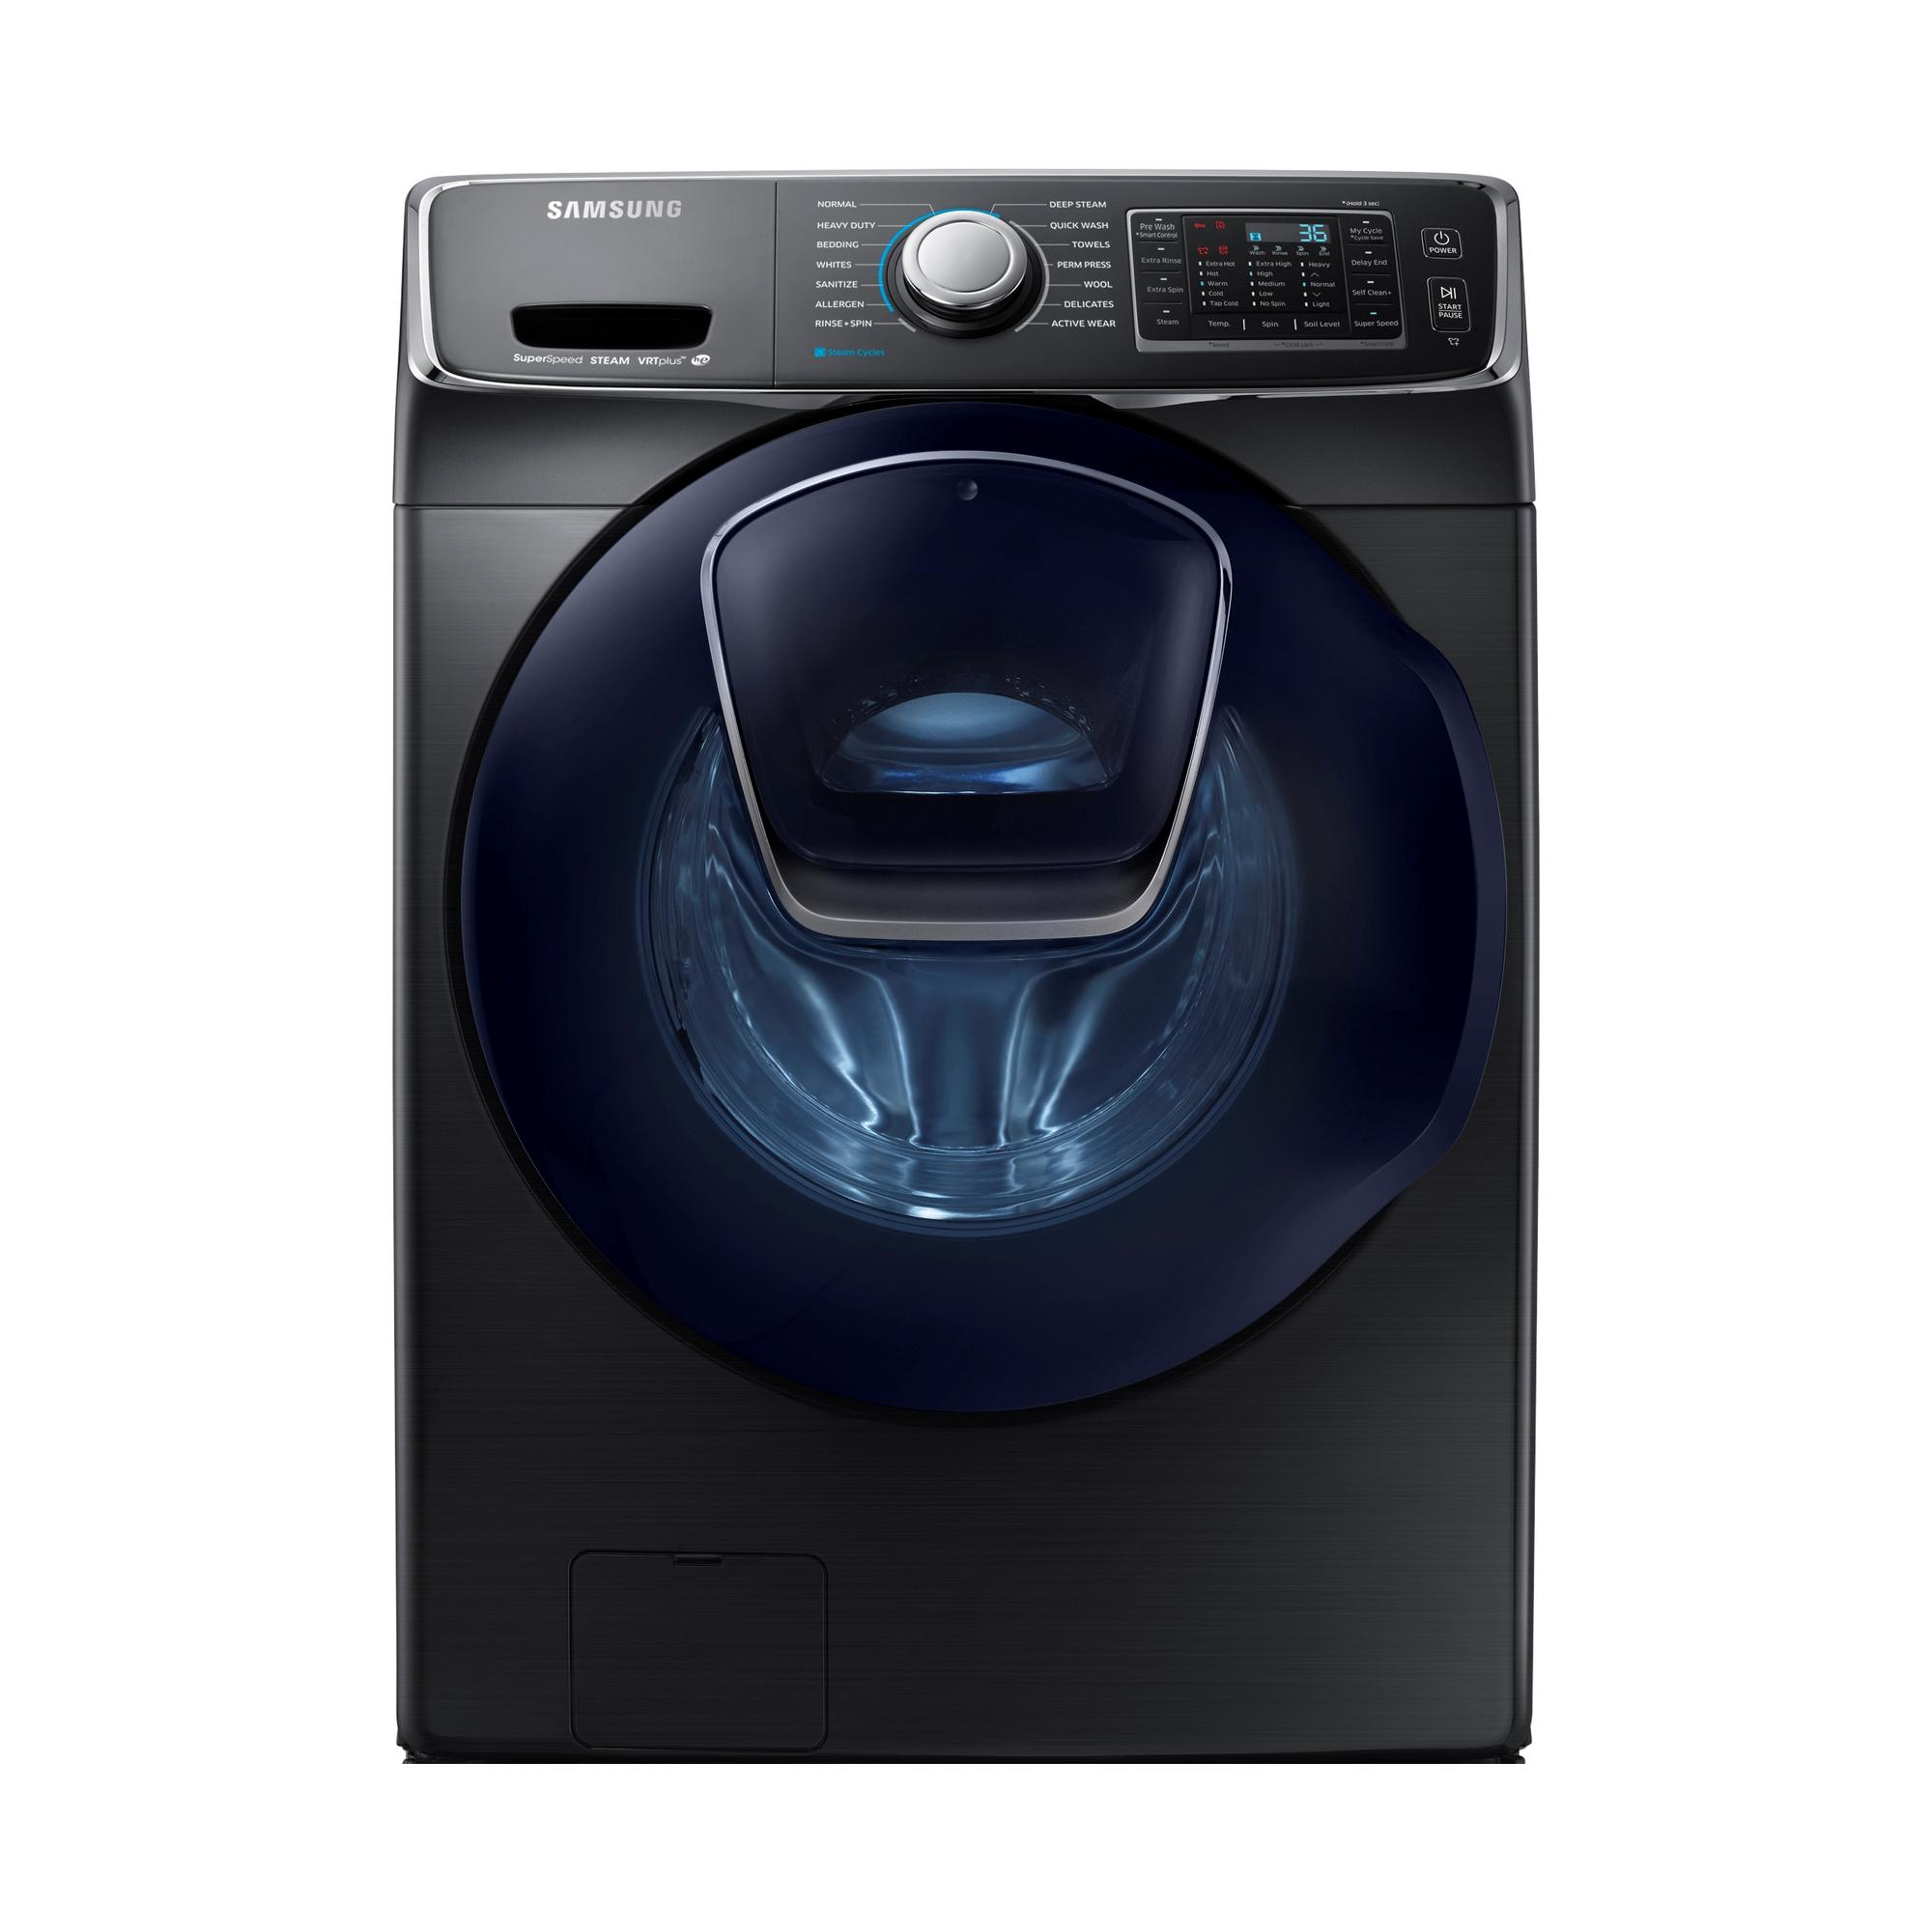 Samsung WF45K6500AV 4.5 cu. ft. Front Load Washer w/ AddWash™ - Black Stainless Steel